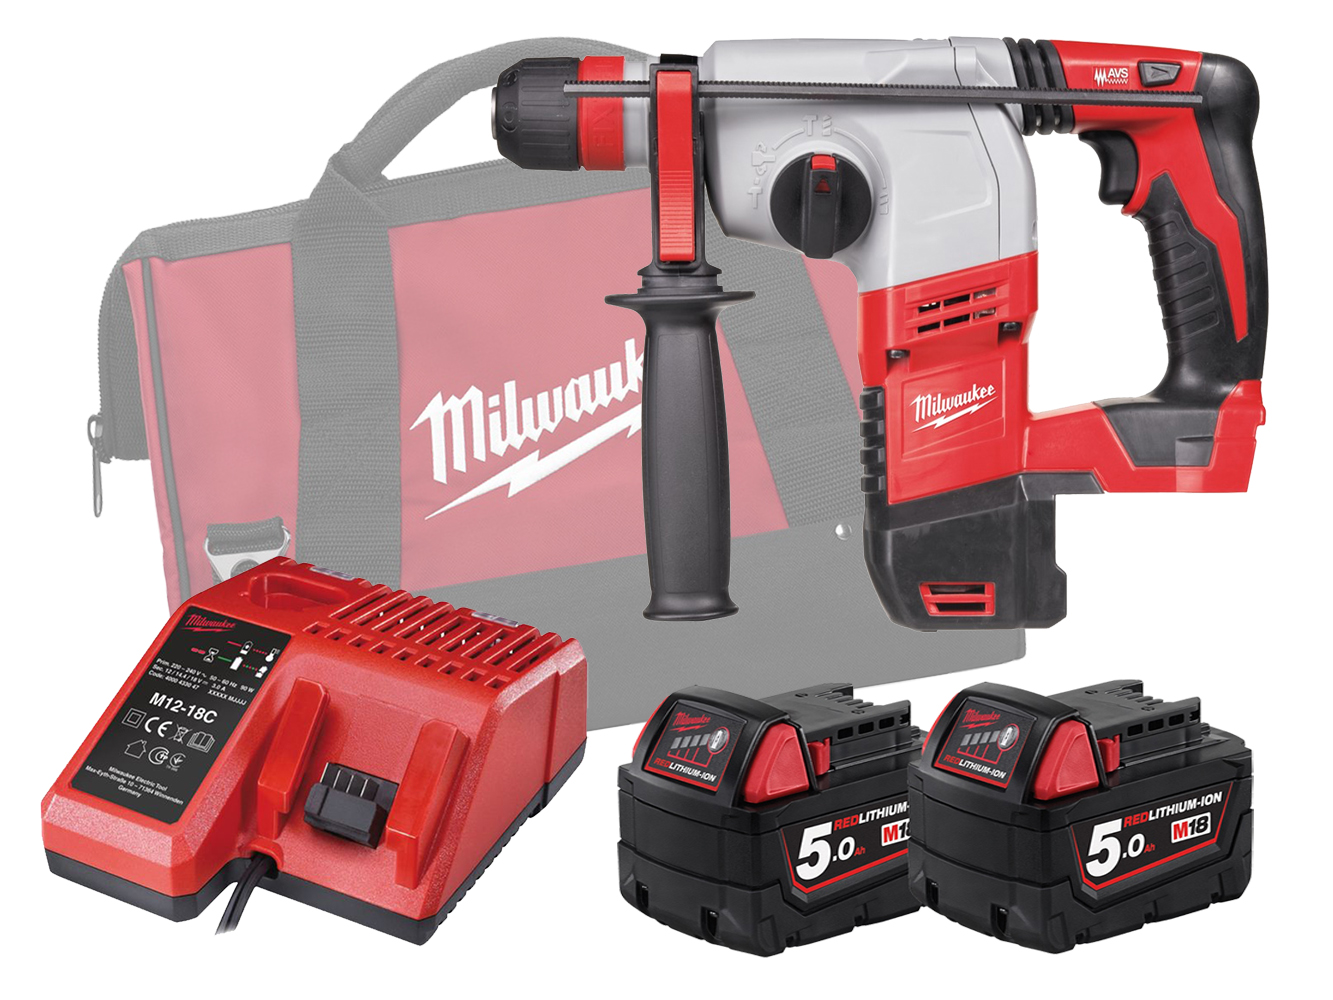 MILWAUKEE 18V BRUSHED 3-MODE SDS PLUS HAMMER - HD18HX - 5.0AH PACK